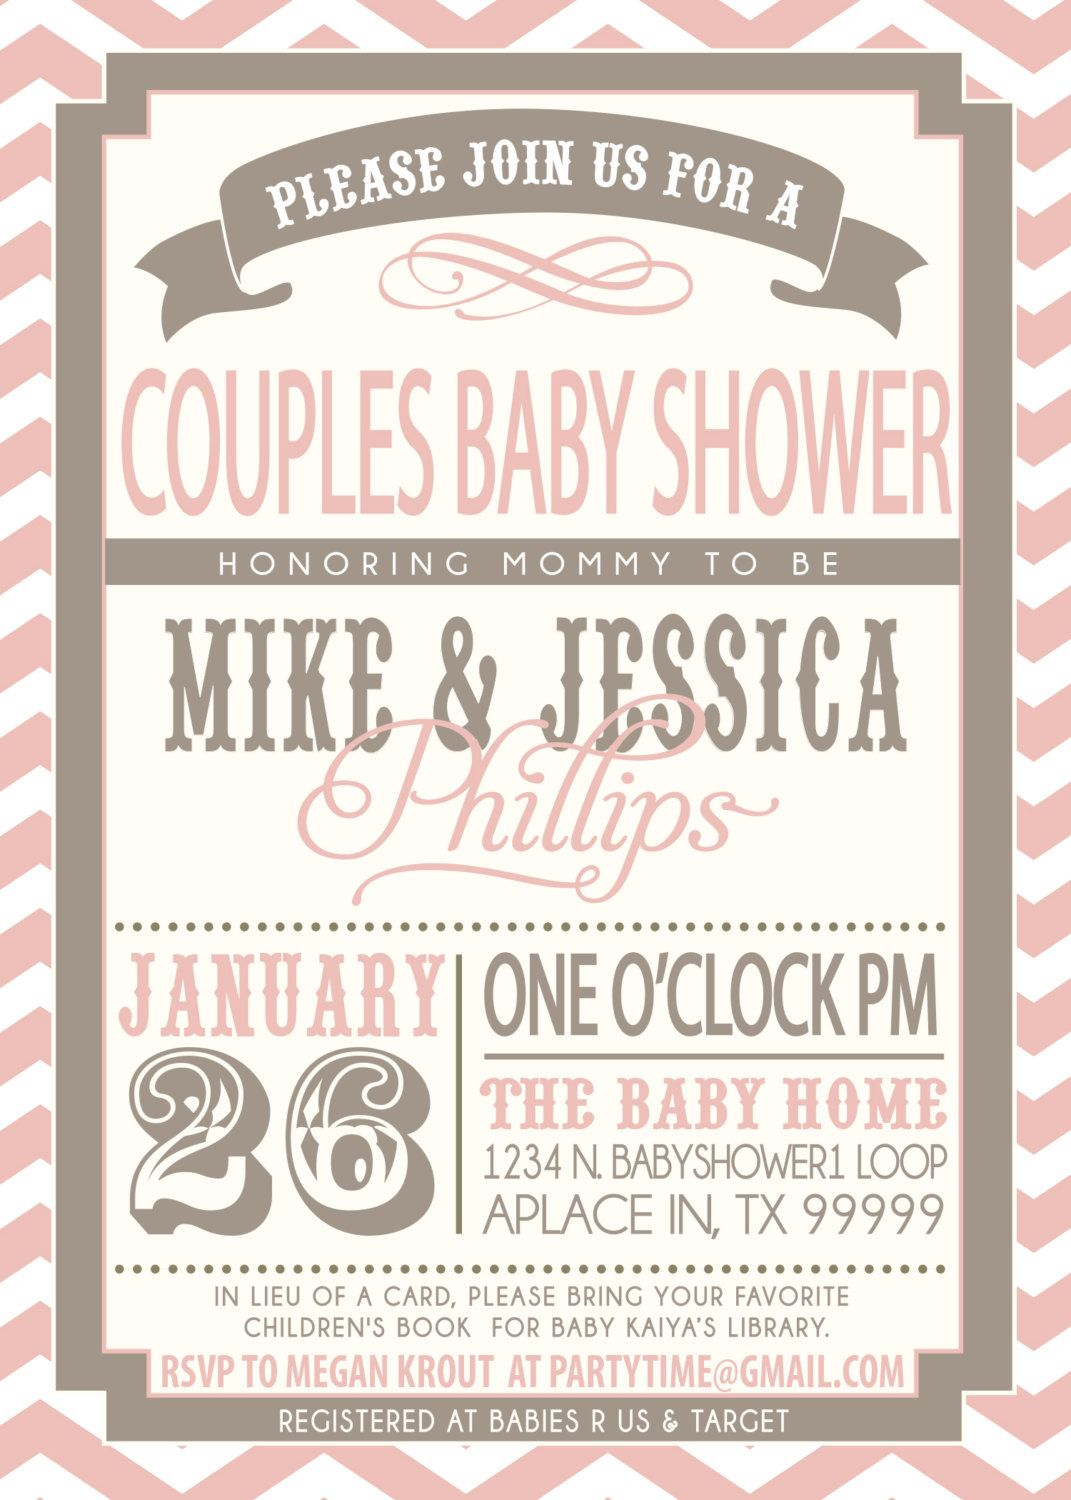 Couples Baby Shower invitation - pink and grey | Couples baby ...